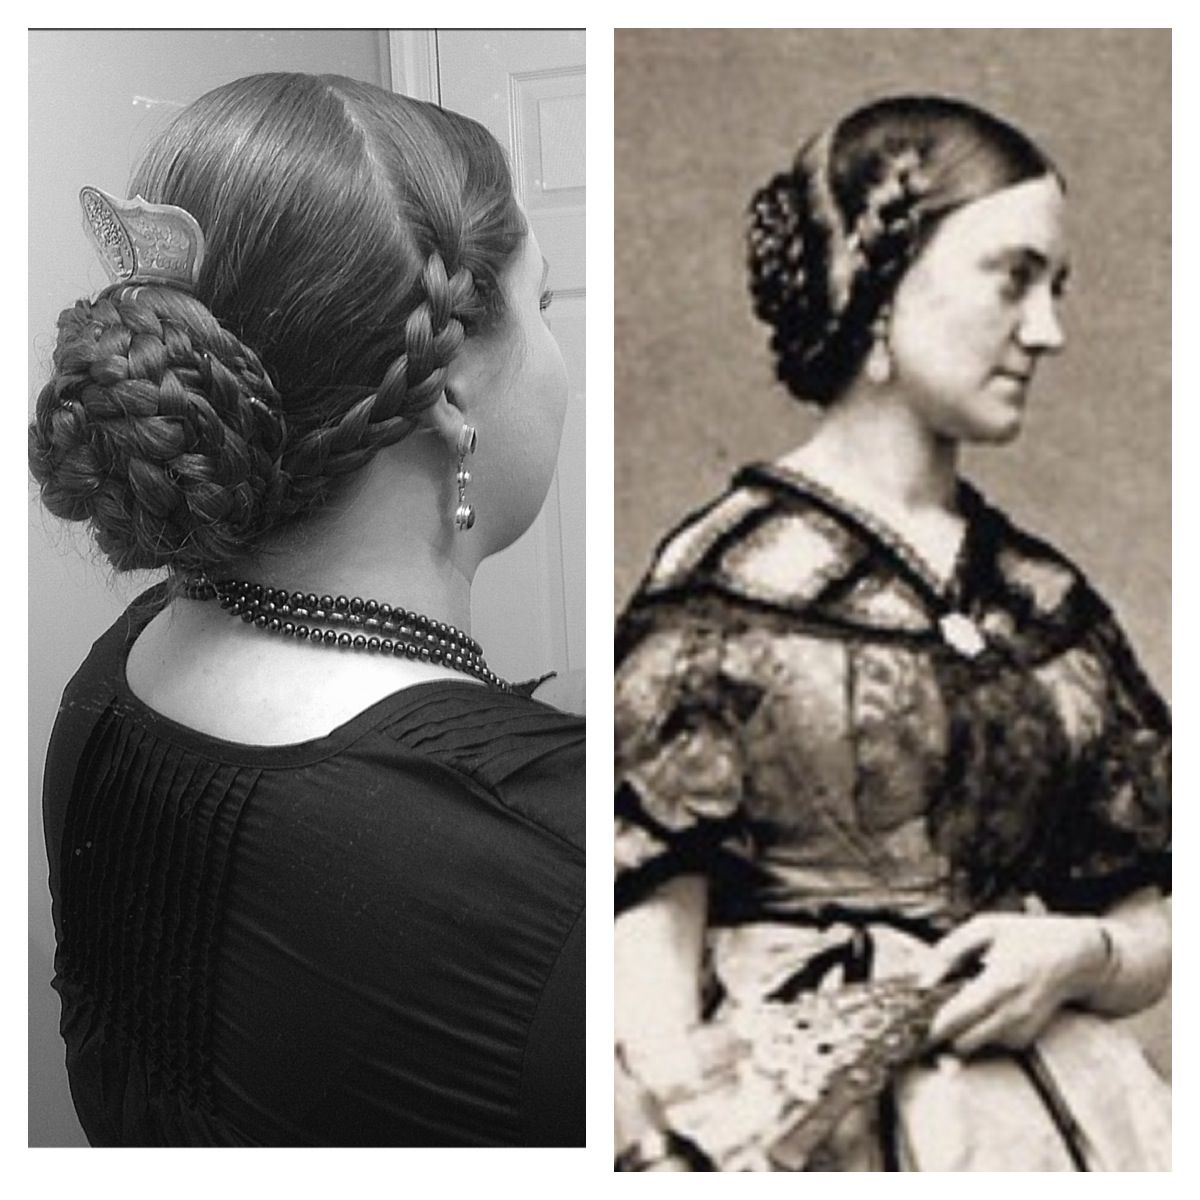 godey's ladies hair style (1860's). modern version on the